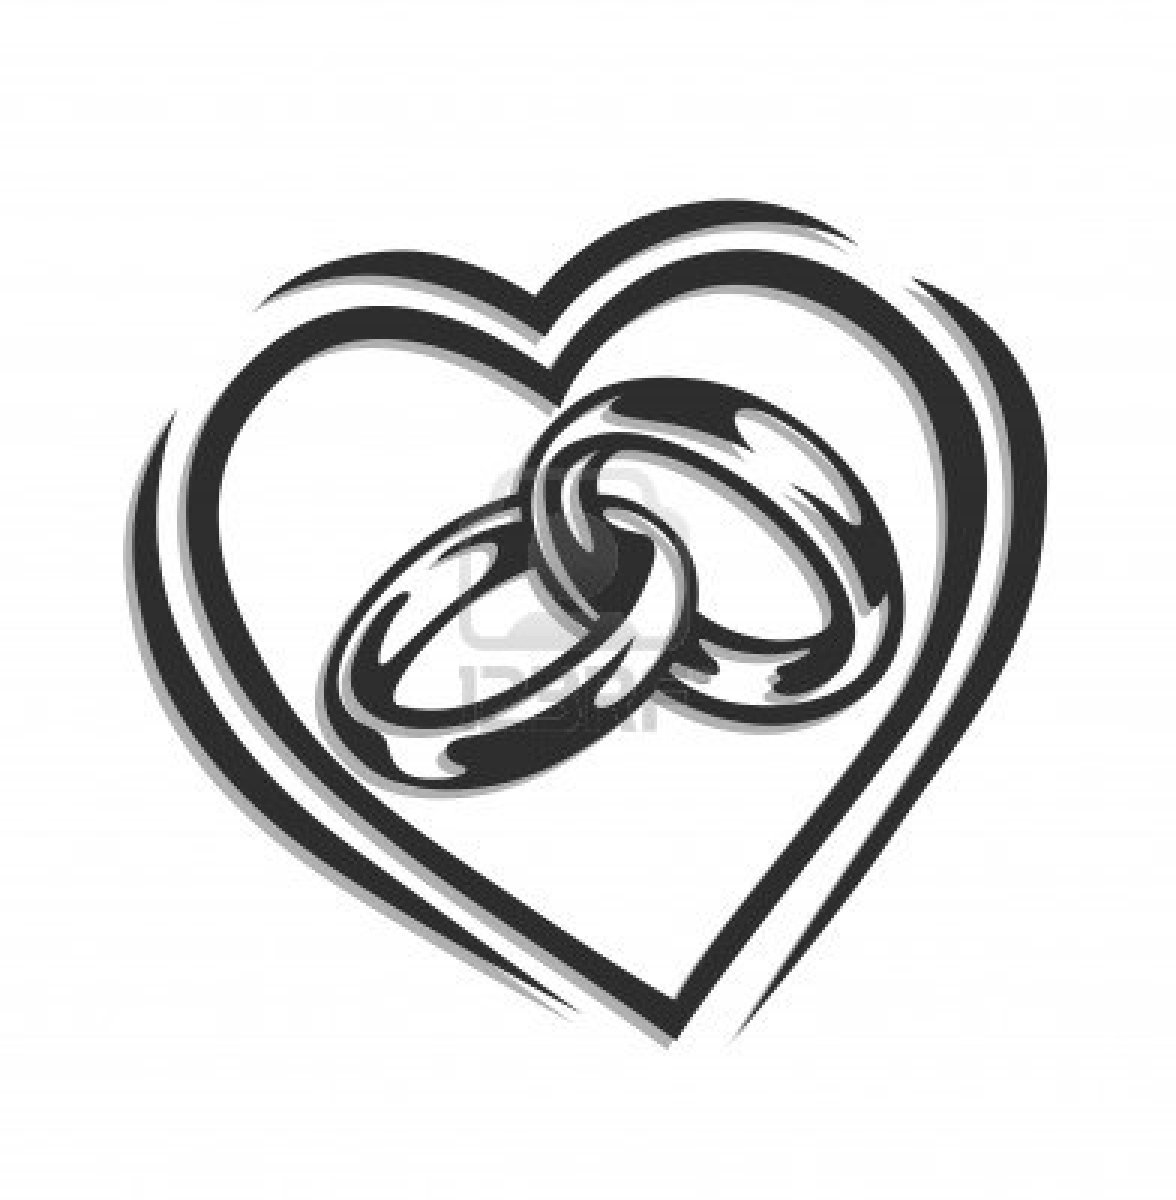 Wedding hearts clipart black and white clipart download Wedding Heart Clipart - Clipart Kid clipart download